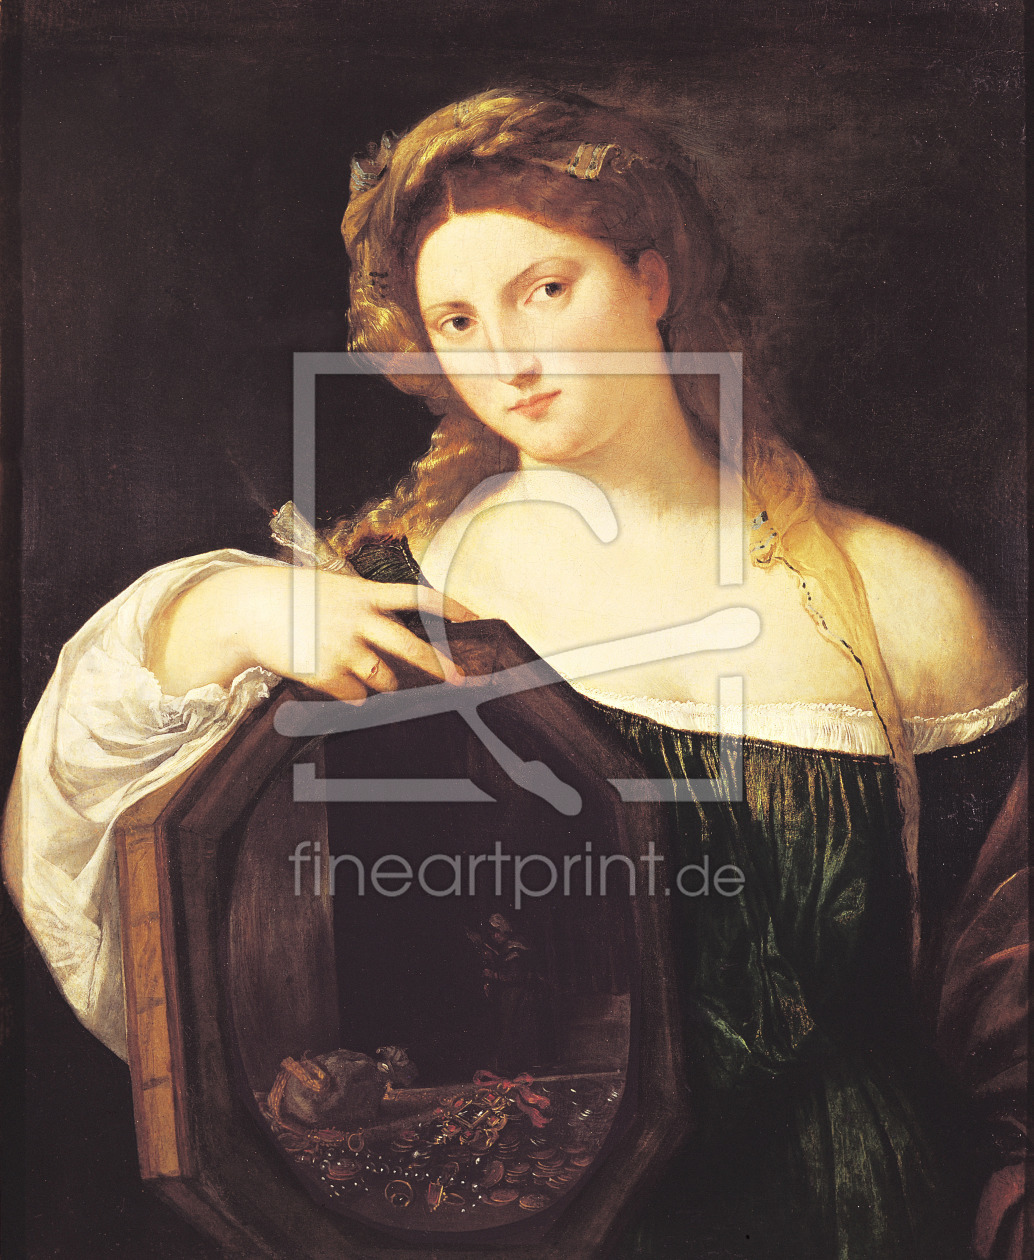 Bild-Nr.: 31001379 Allegory of Vanity, or Young Woman with a Mirror, c.1515 erstellt von Vecellio, Tiziano